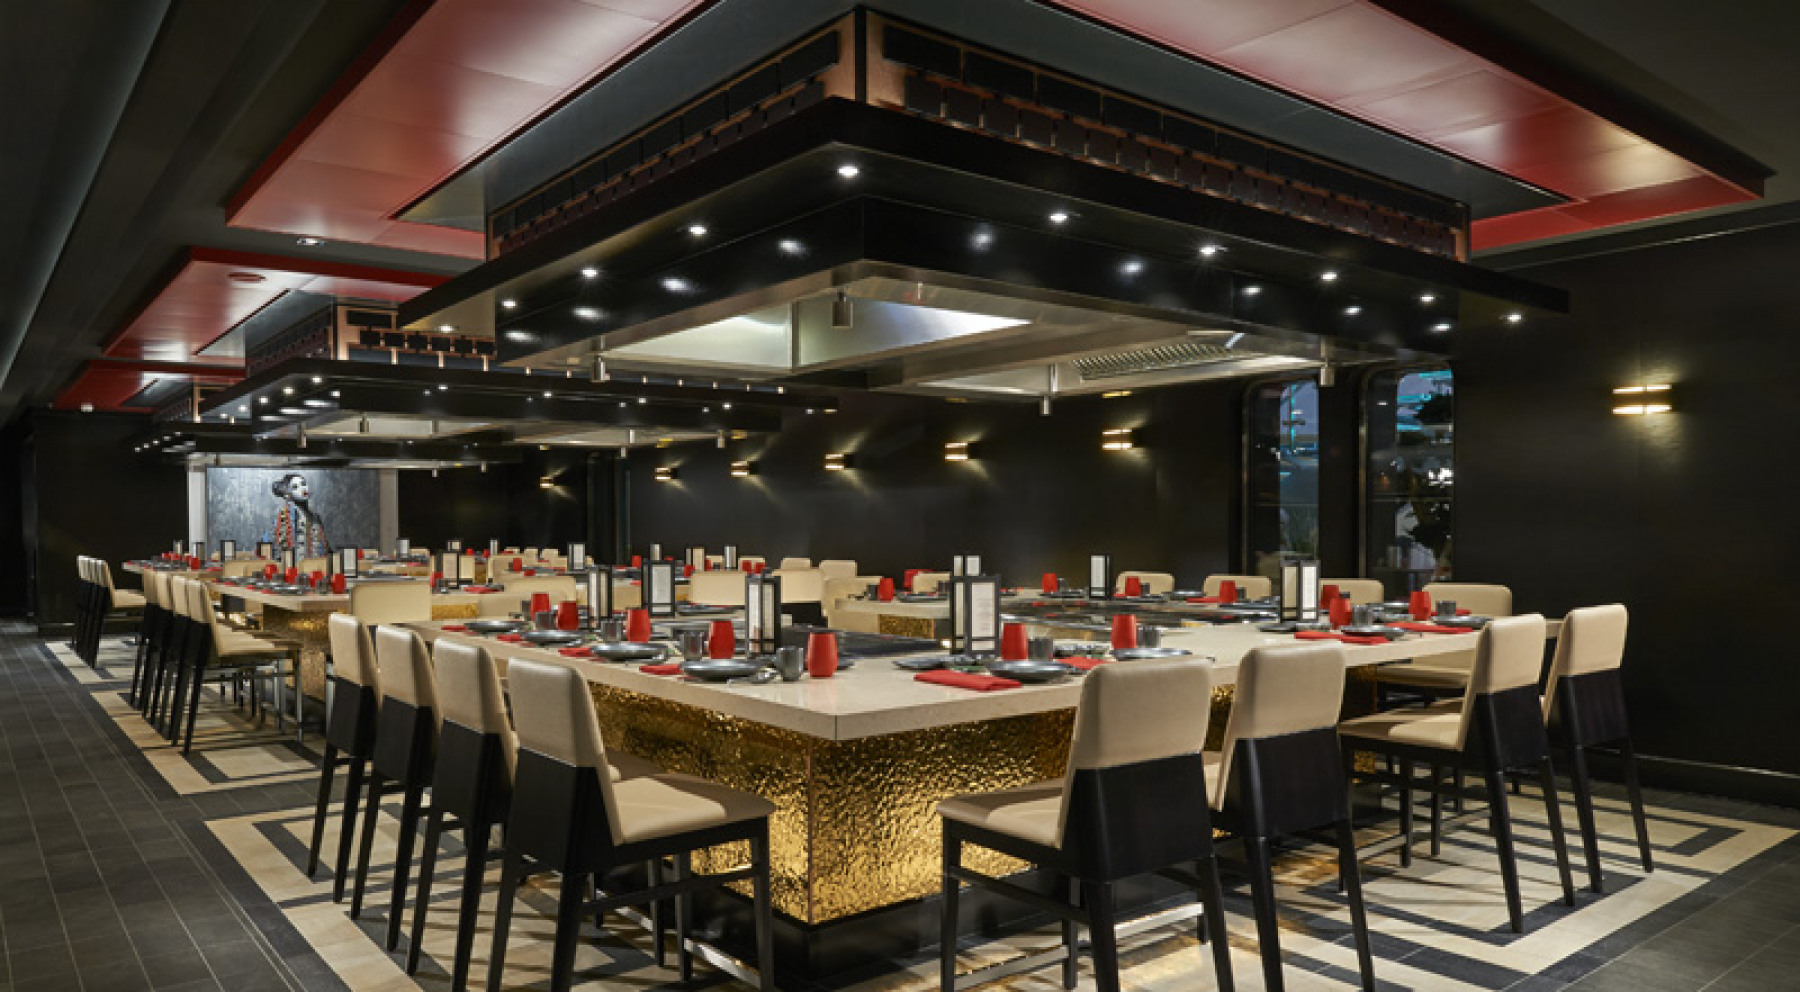 Norwegian Cruise Lines Norwegian Joy Interior Teppanyaki.jpg